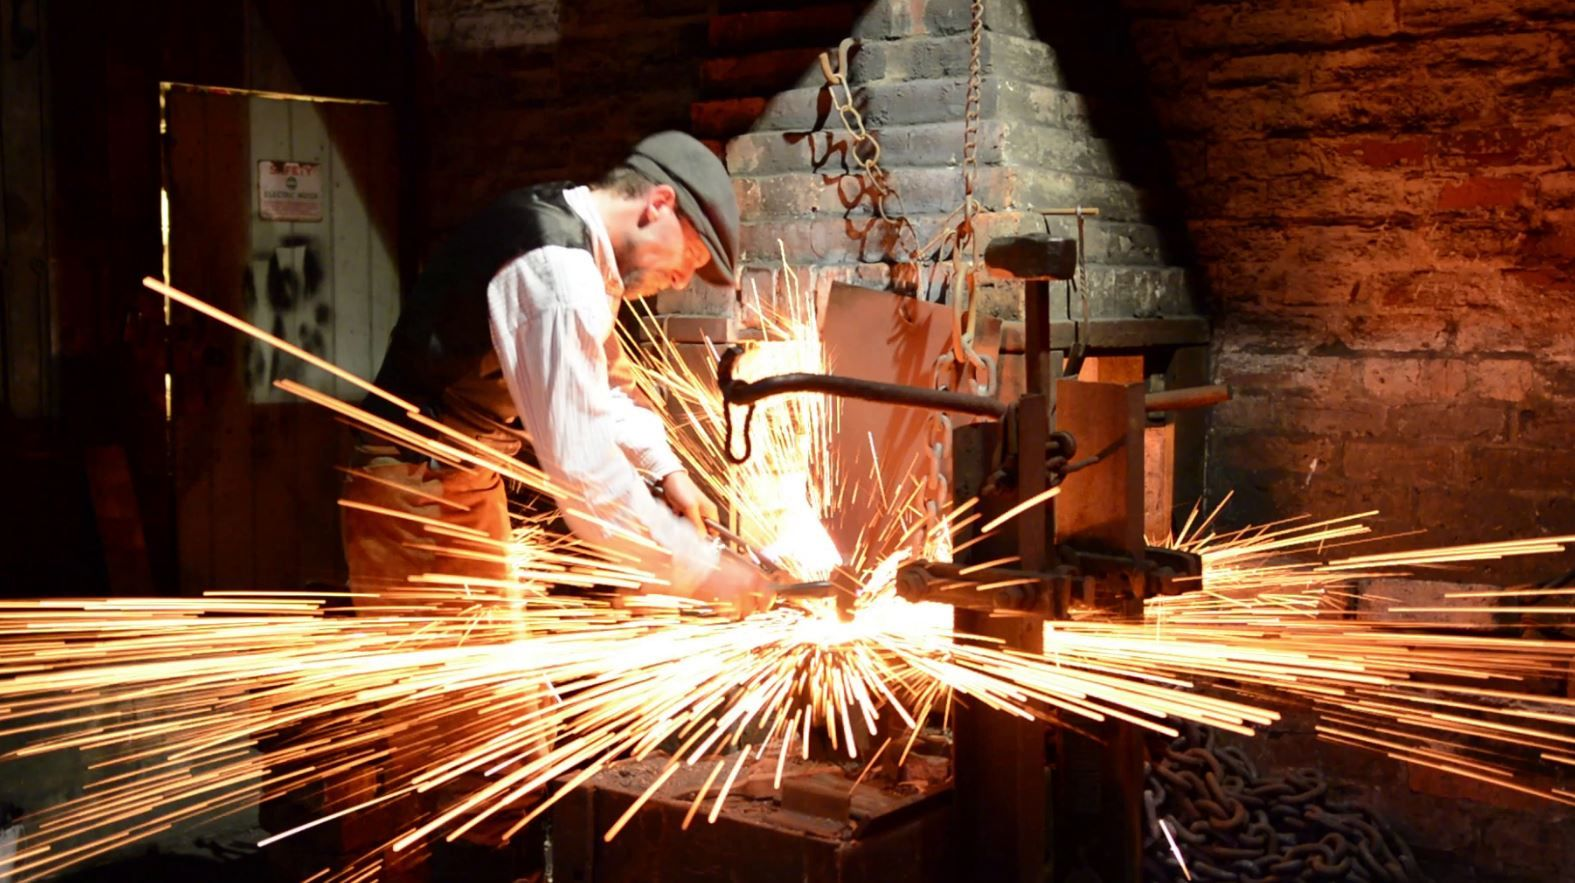 Metalworker Daniel Williams demonstrates old manufacturing techniques at the Black Country Living Museum